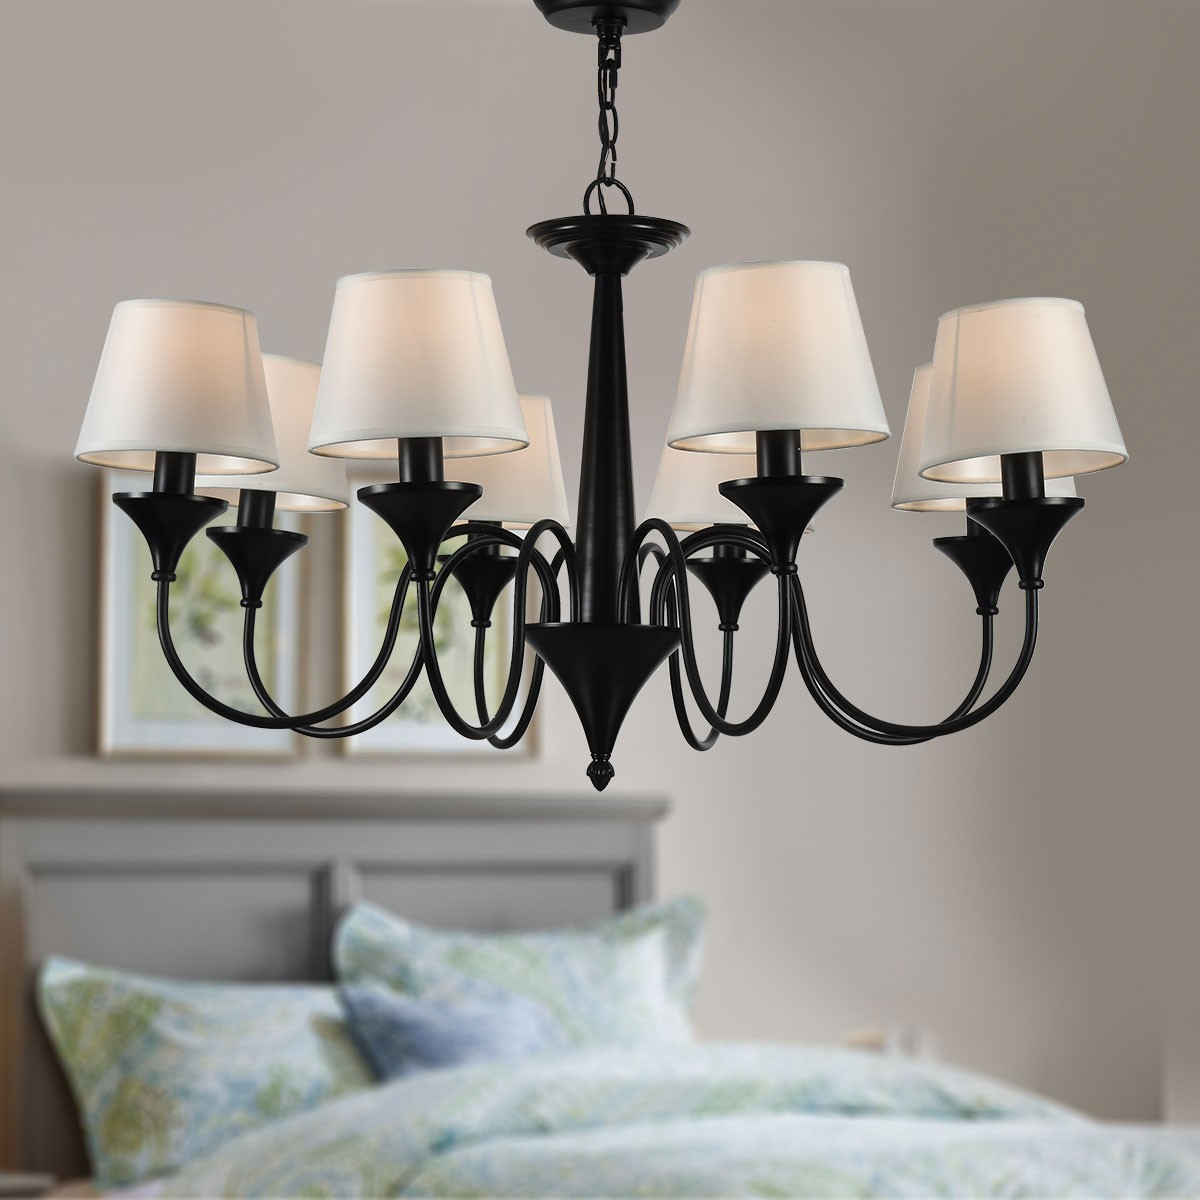 8 Light Black Wrought Iron Chandelier With Cloth Shades